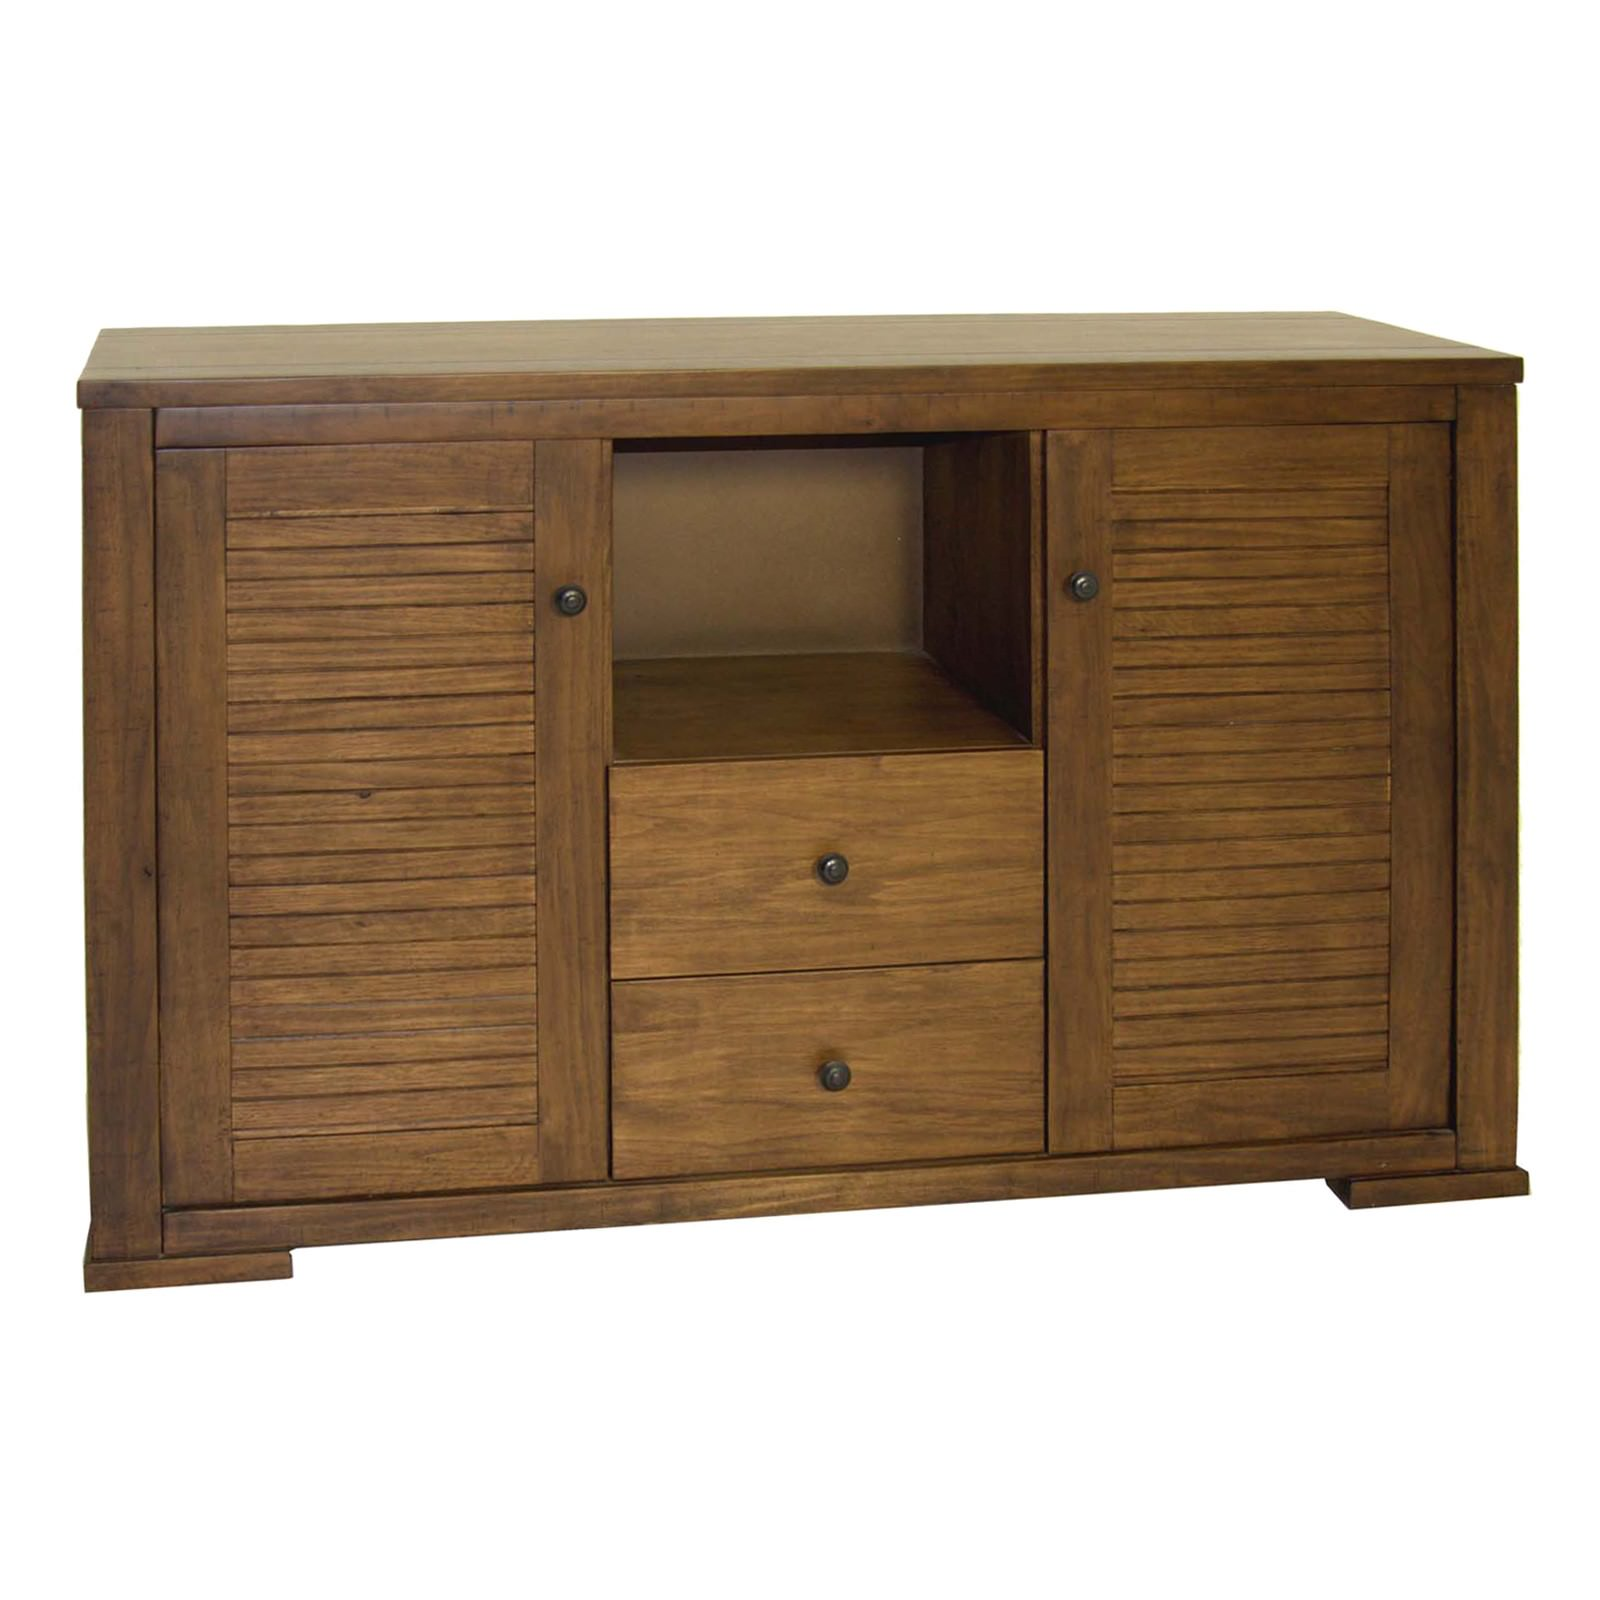 Huesca Mountain Ash Timber 2 Door 2 Drawer Buffet Table, 149cm